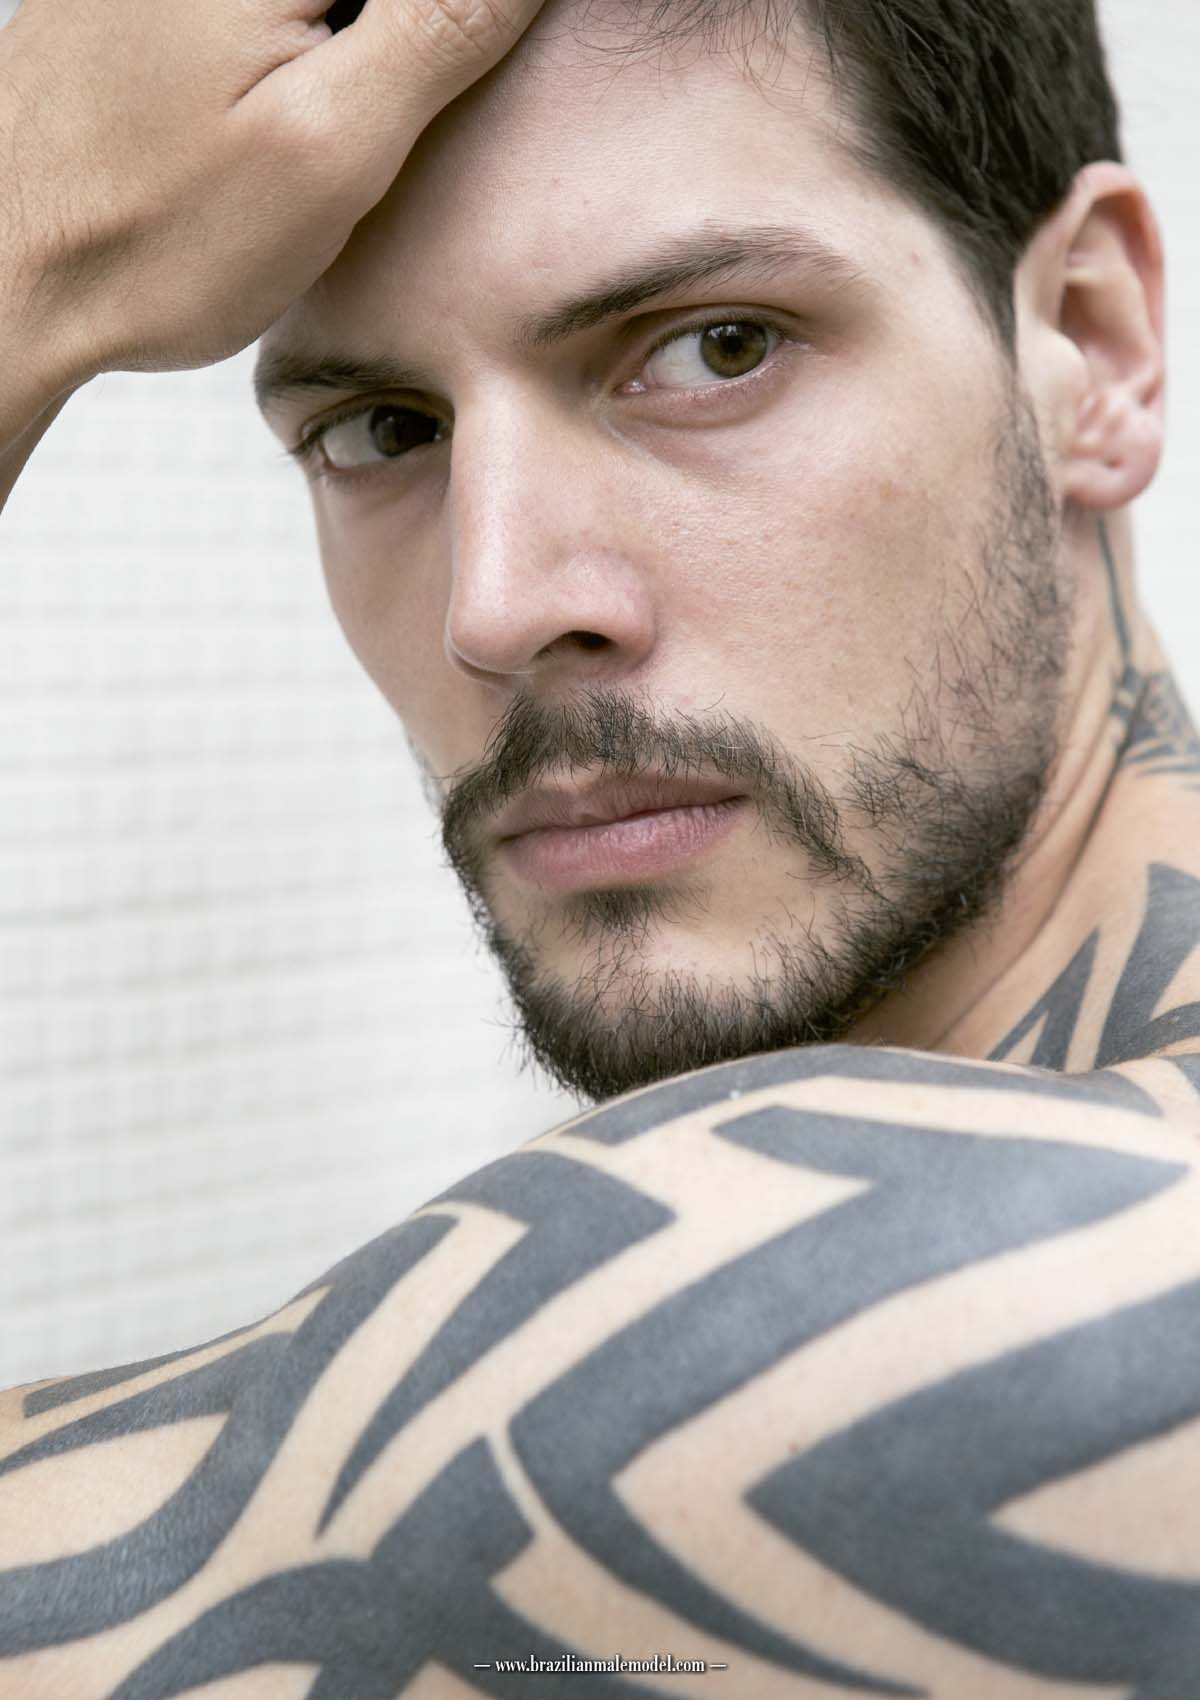 Peter Hahmann by Kenji Nakamura for Brazilian Male Model Magazine#1